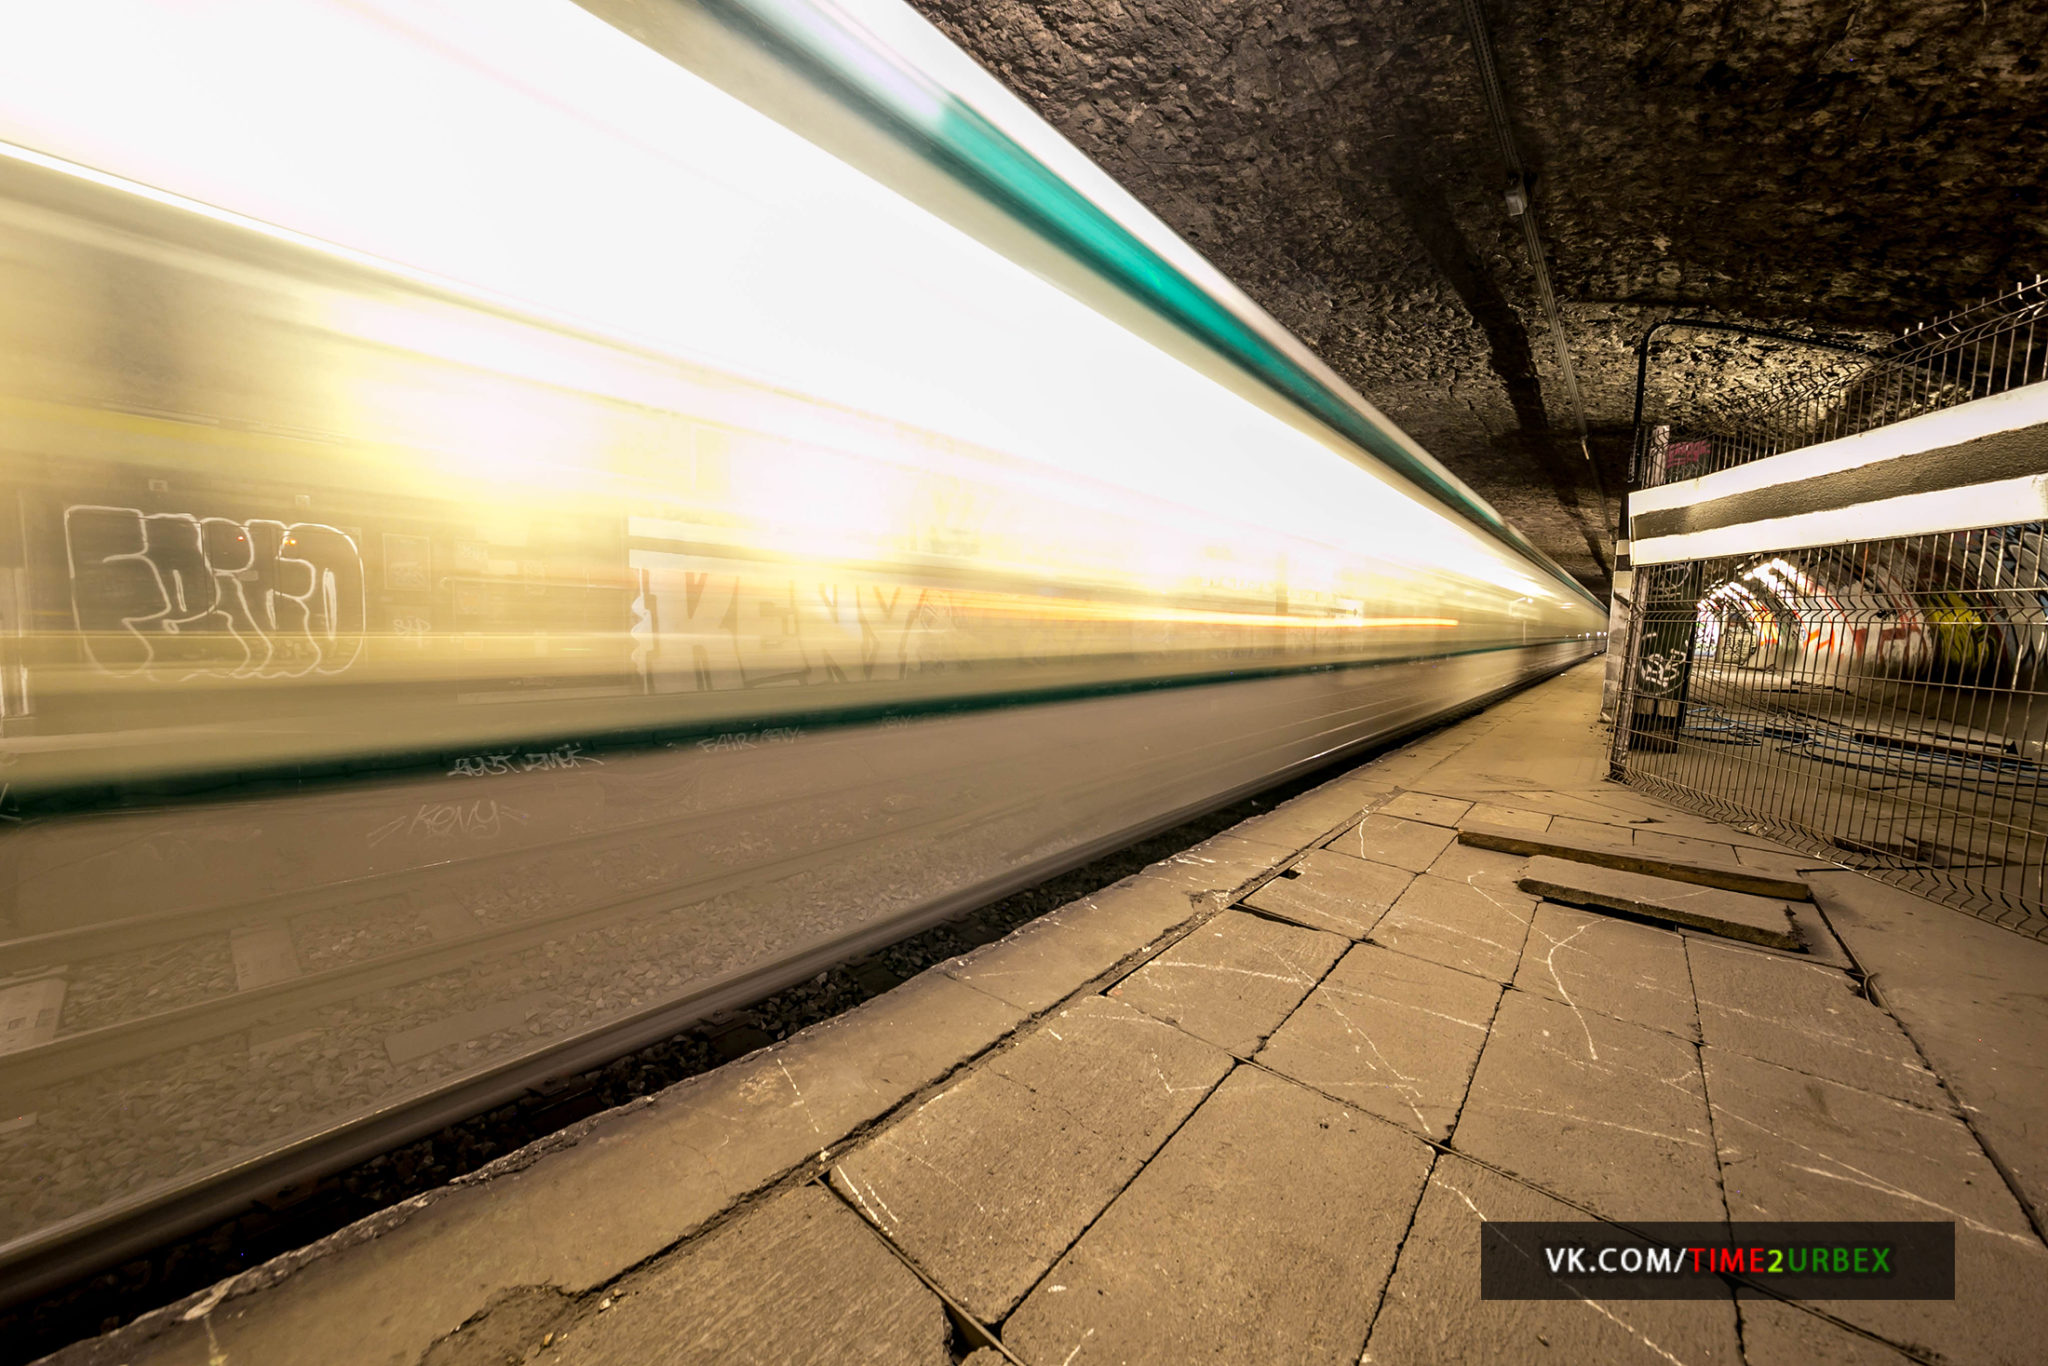 33 7 GHOST STATIONS OF THE PARIS METRO AND HOW TO GET INTO THE ILLEGALLY + UNUSUAL TUNNELS + RER